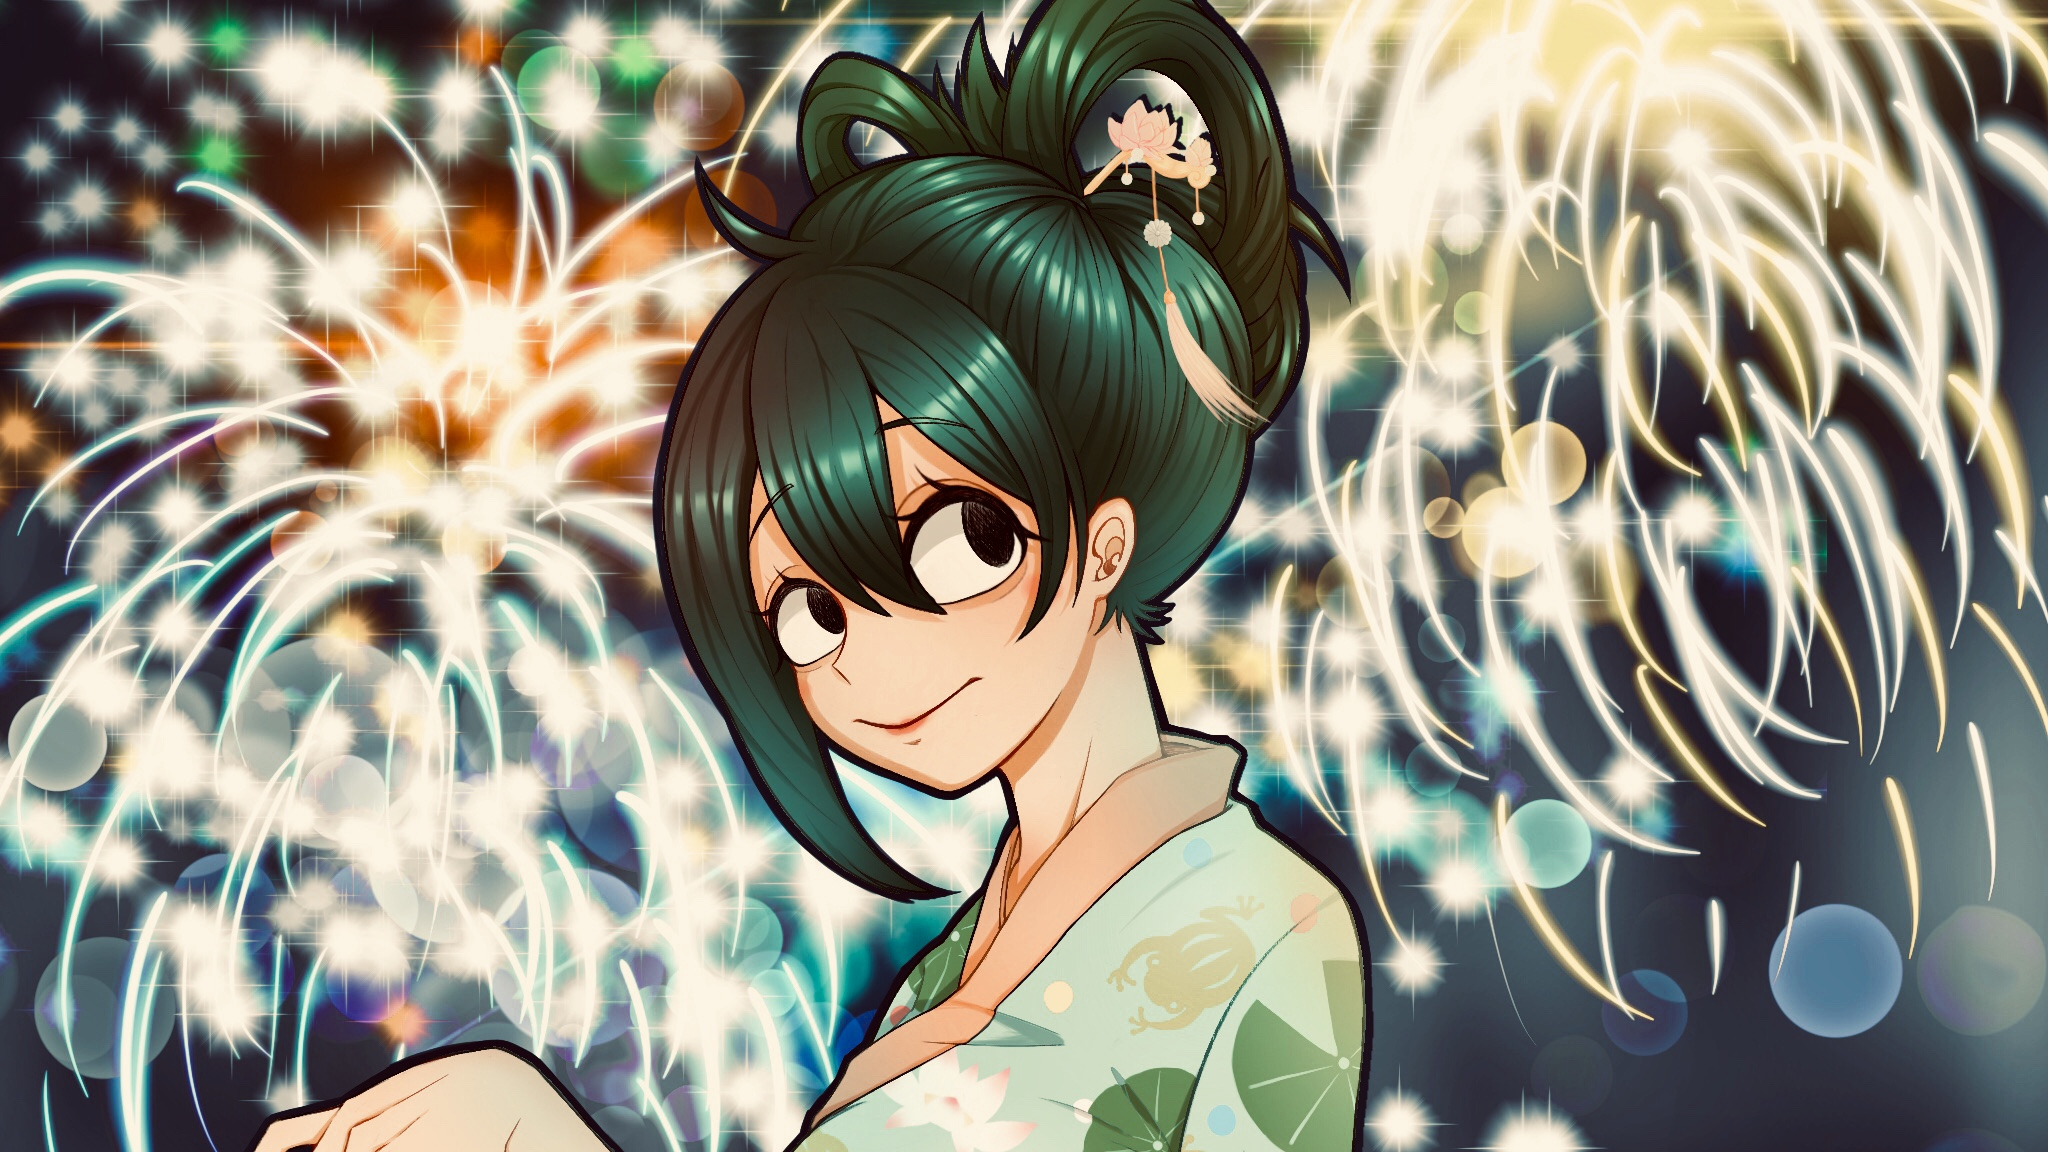 Download for free wallpaper from anime my hero academia with tags: My Hero Academia HD Wallpaper | Background Image ...